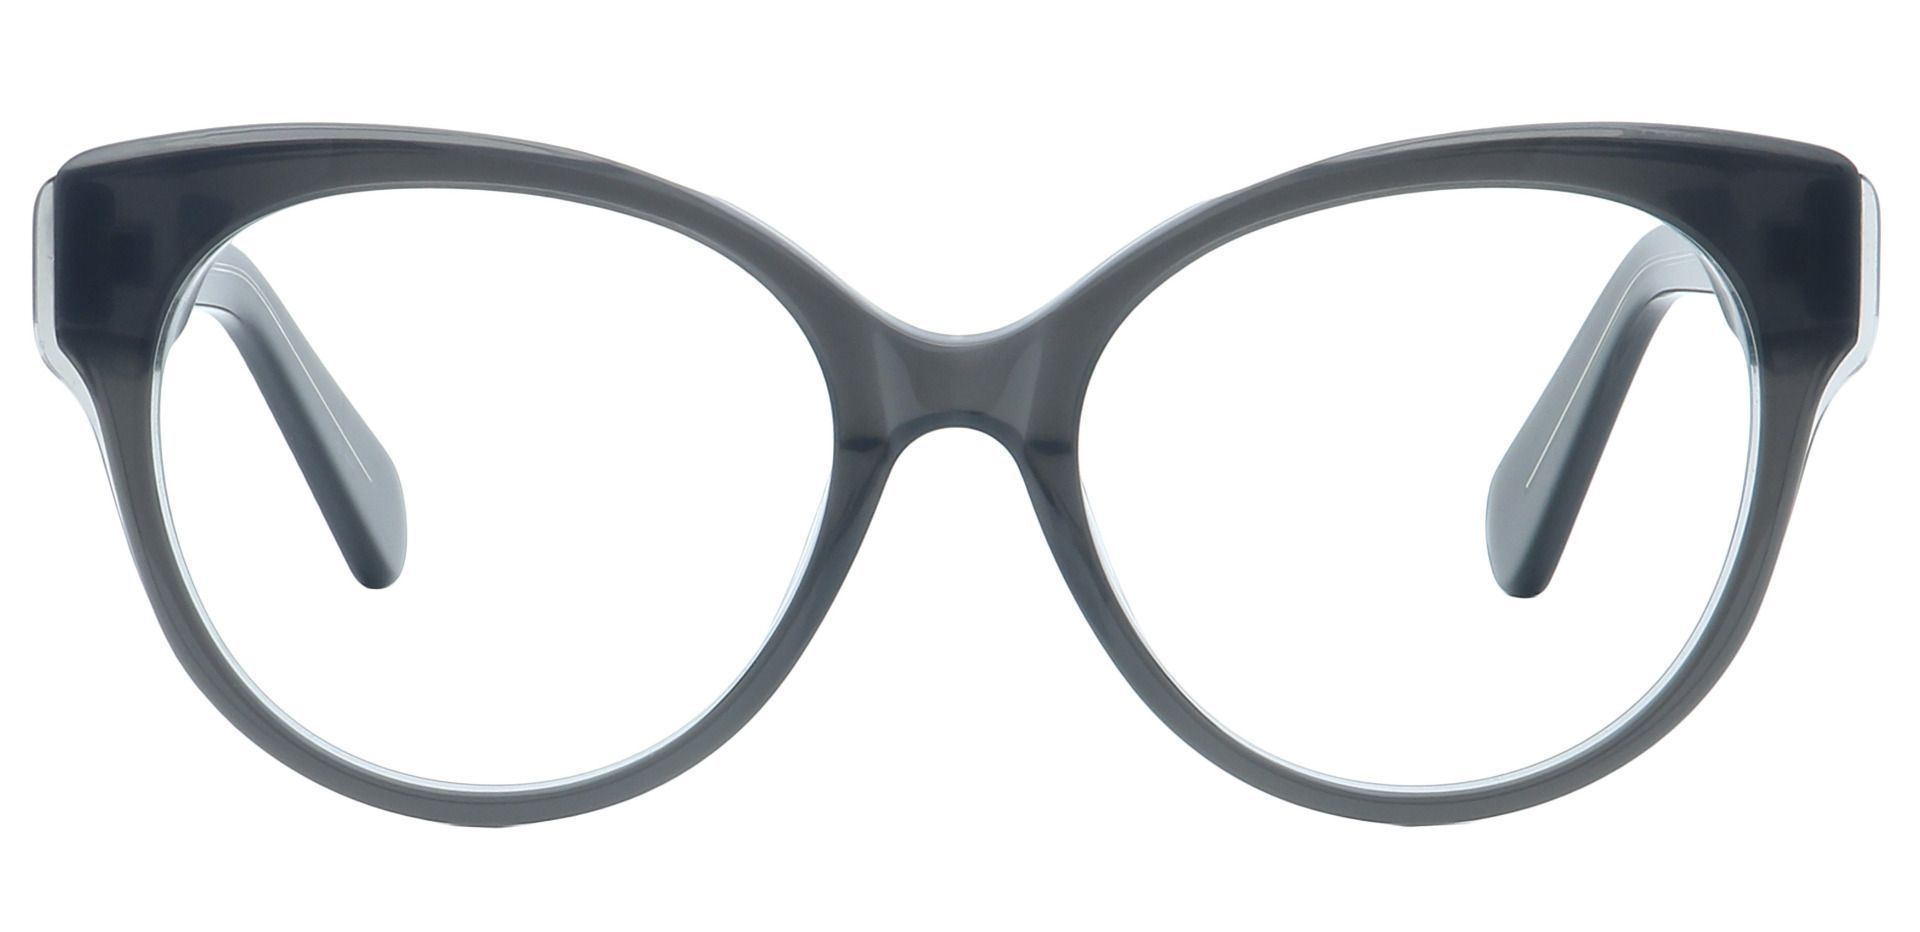 DJ Oval Non-Rx Glasses - Gray